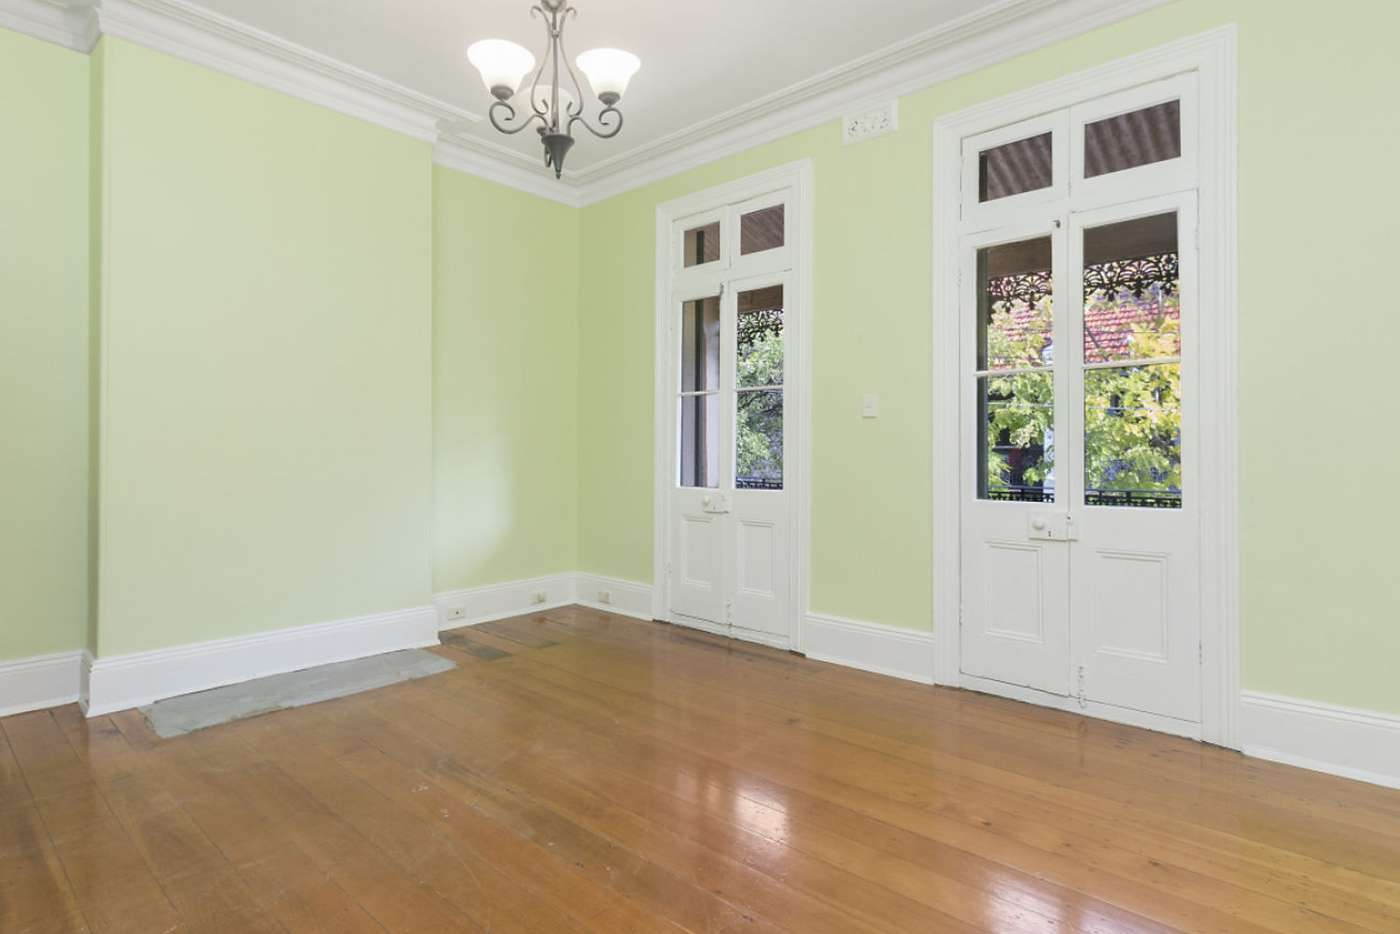 Seventh view of Homely house listing, 56 Ridge St, Surry Hills NSW 2010